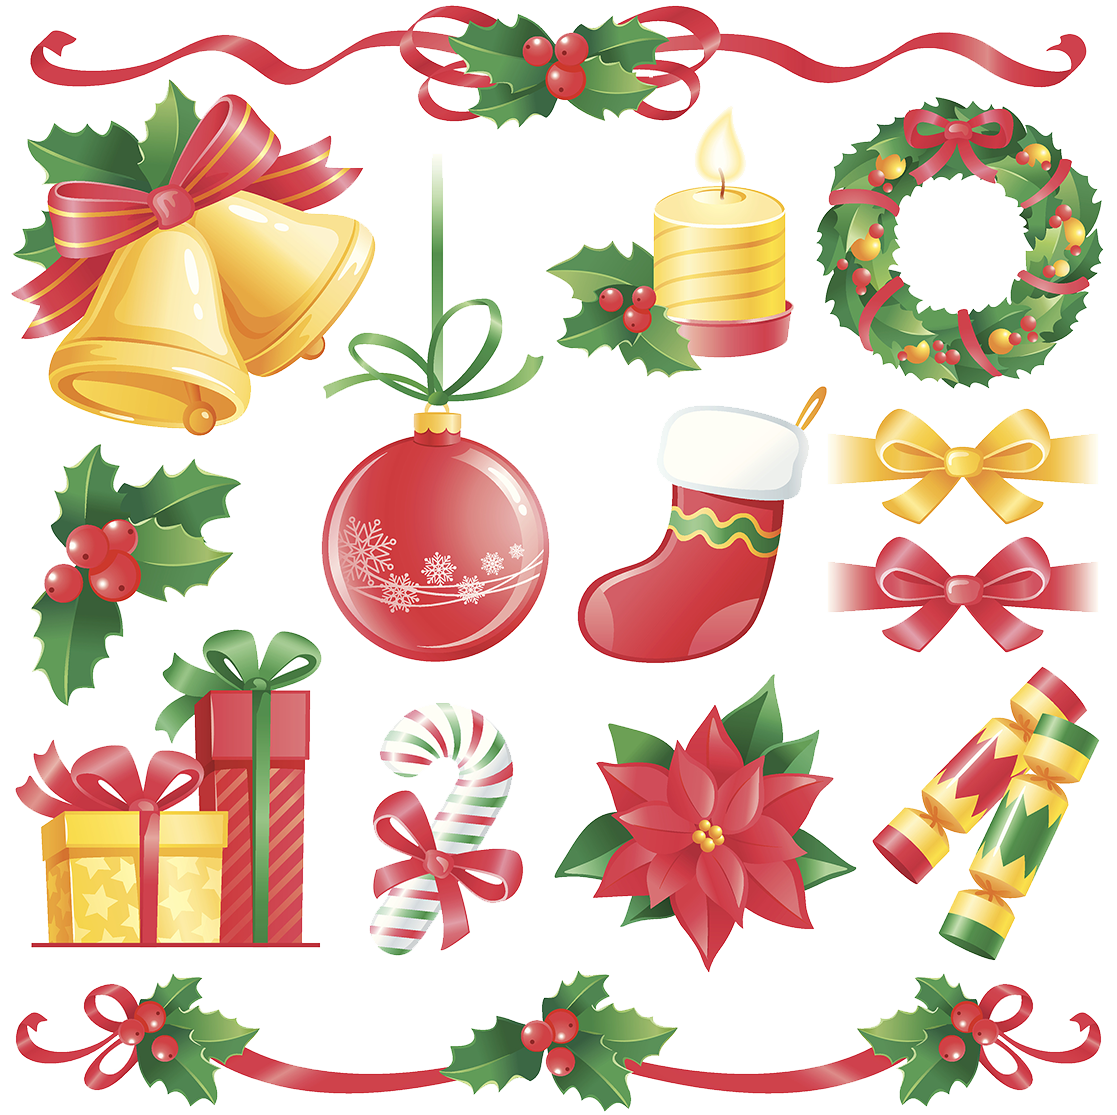 Flat Cracker Illustration Design Decorations Christmas PNG Image